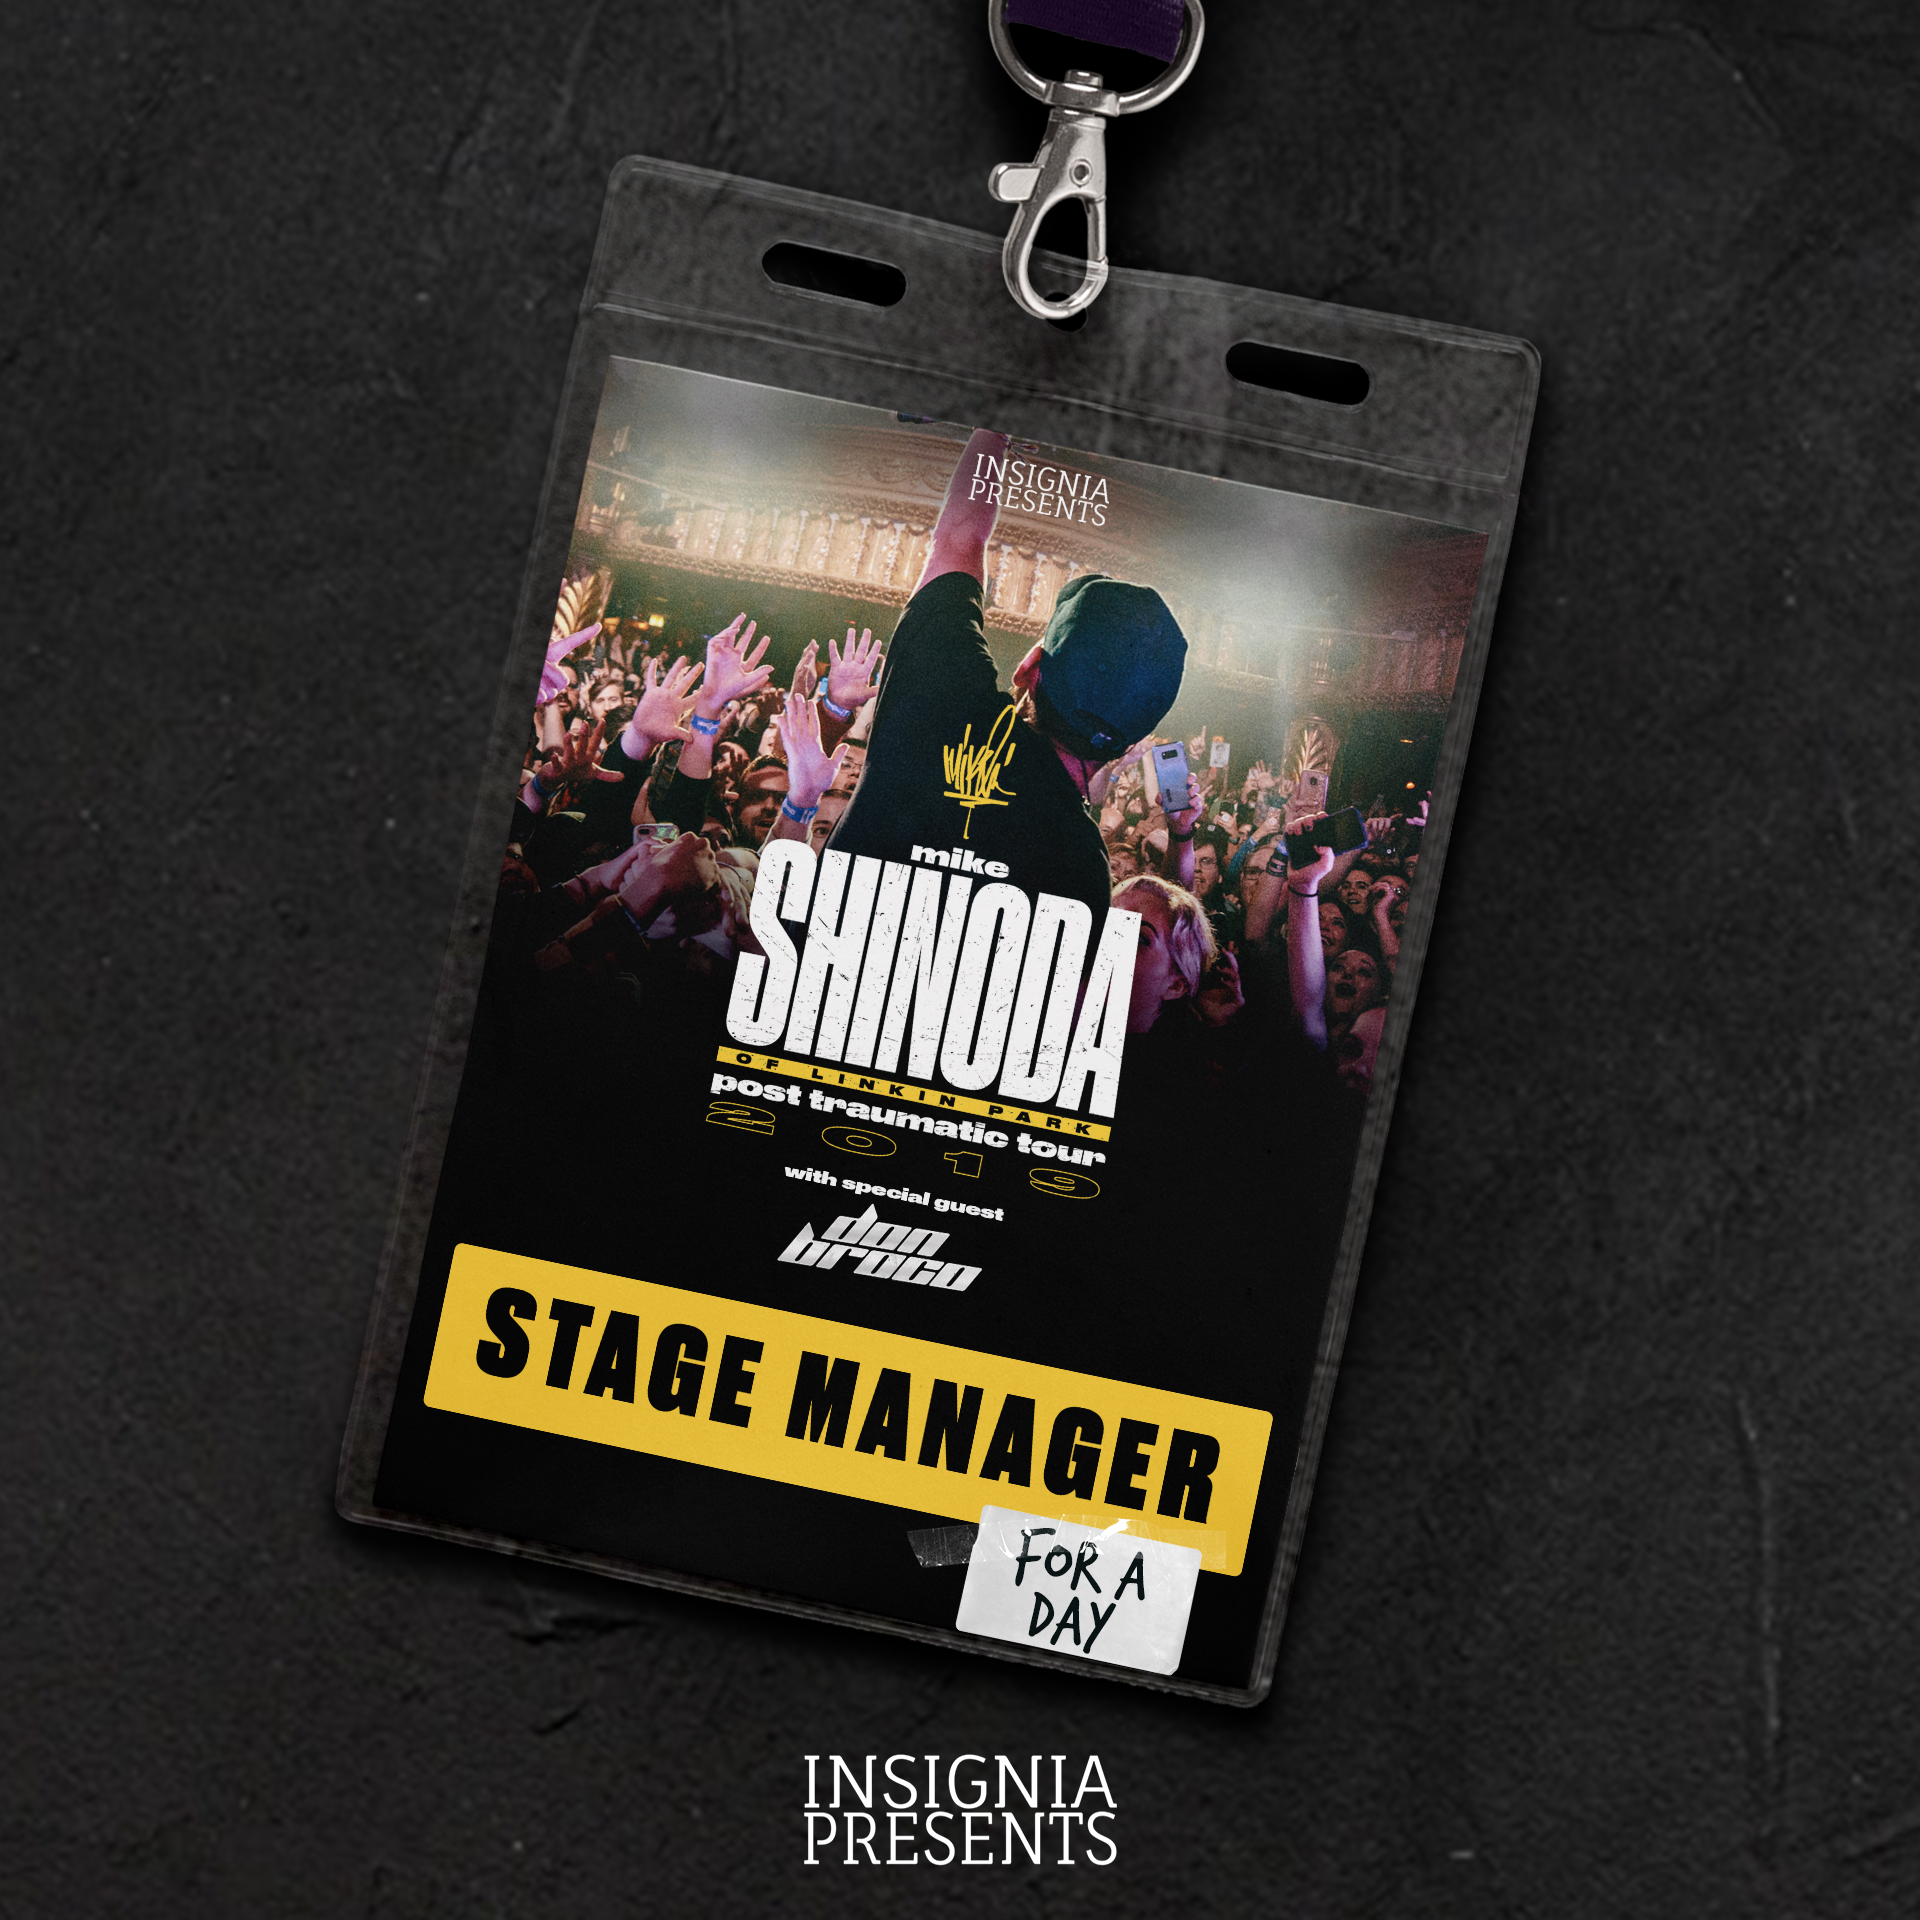 StageManagerForADay-MikeShinoda-09.06.19-NewFrontierTheater-ManilaPhilippines-v7.png